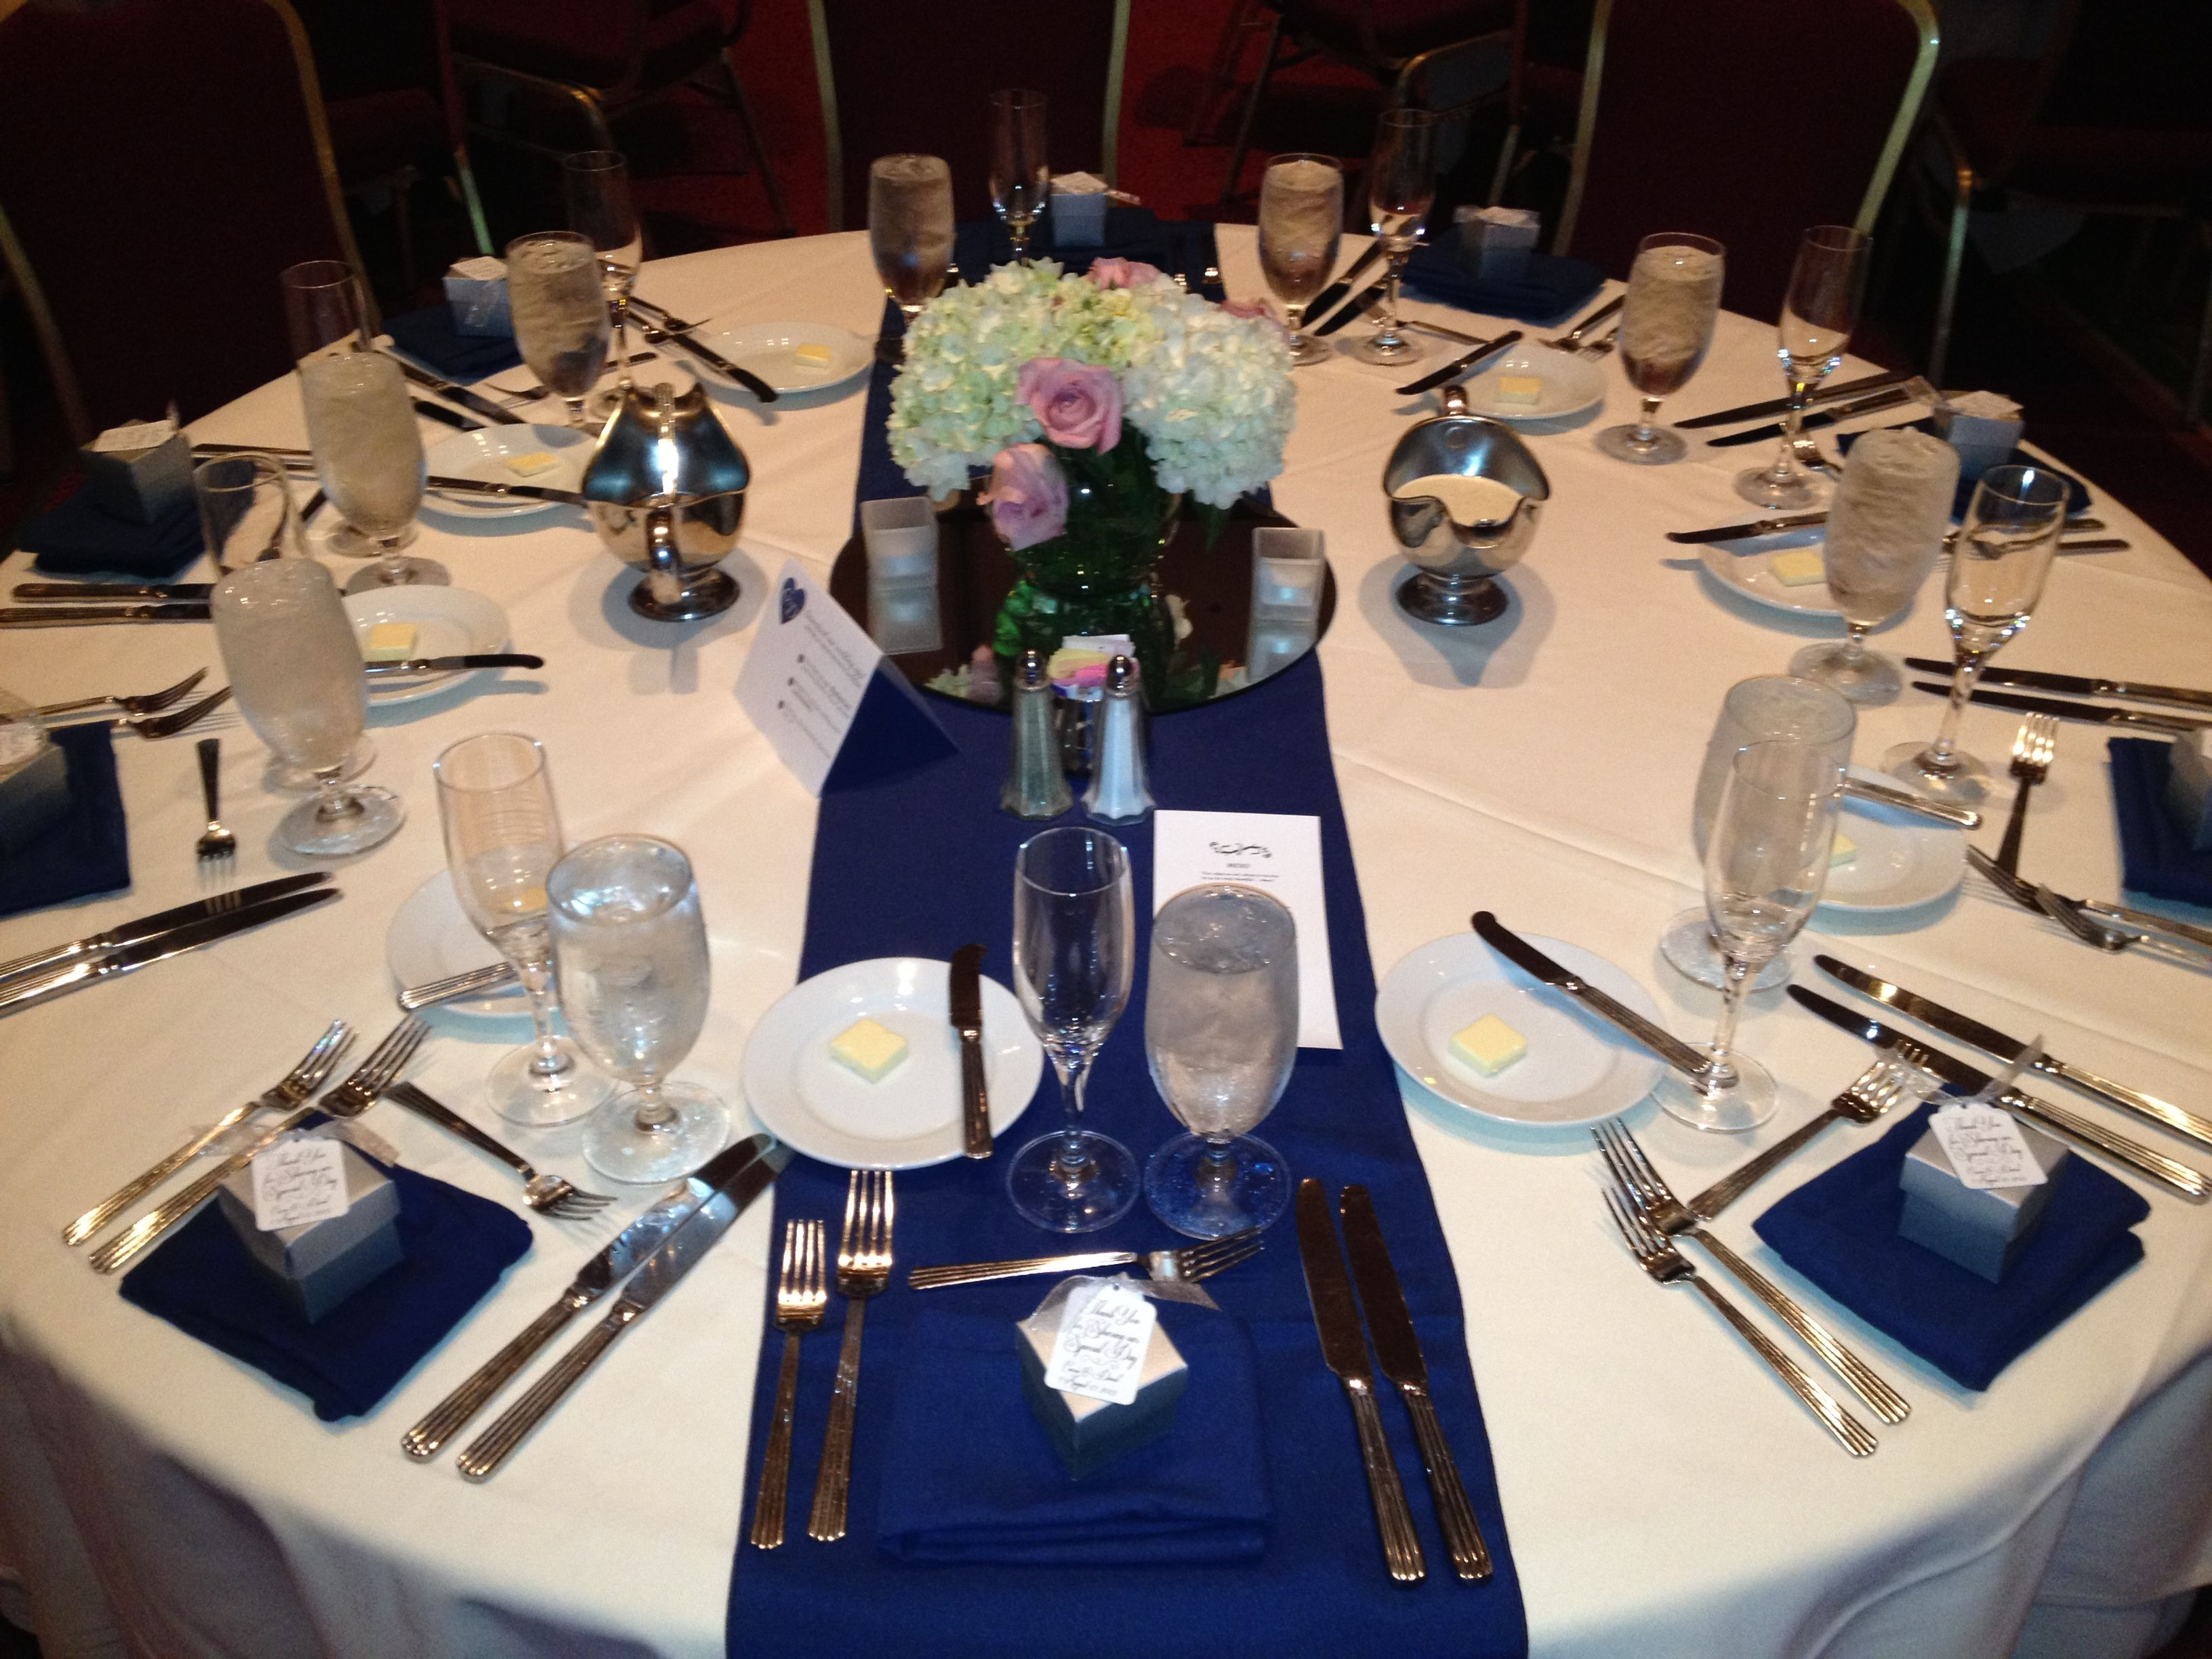 White Linen With Navy Blue Table Runner And Napkins Blue Table Runner Navy Blue Table Runner Table Runners Wedding